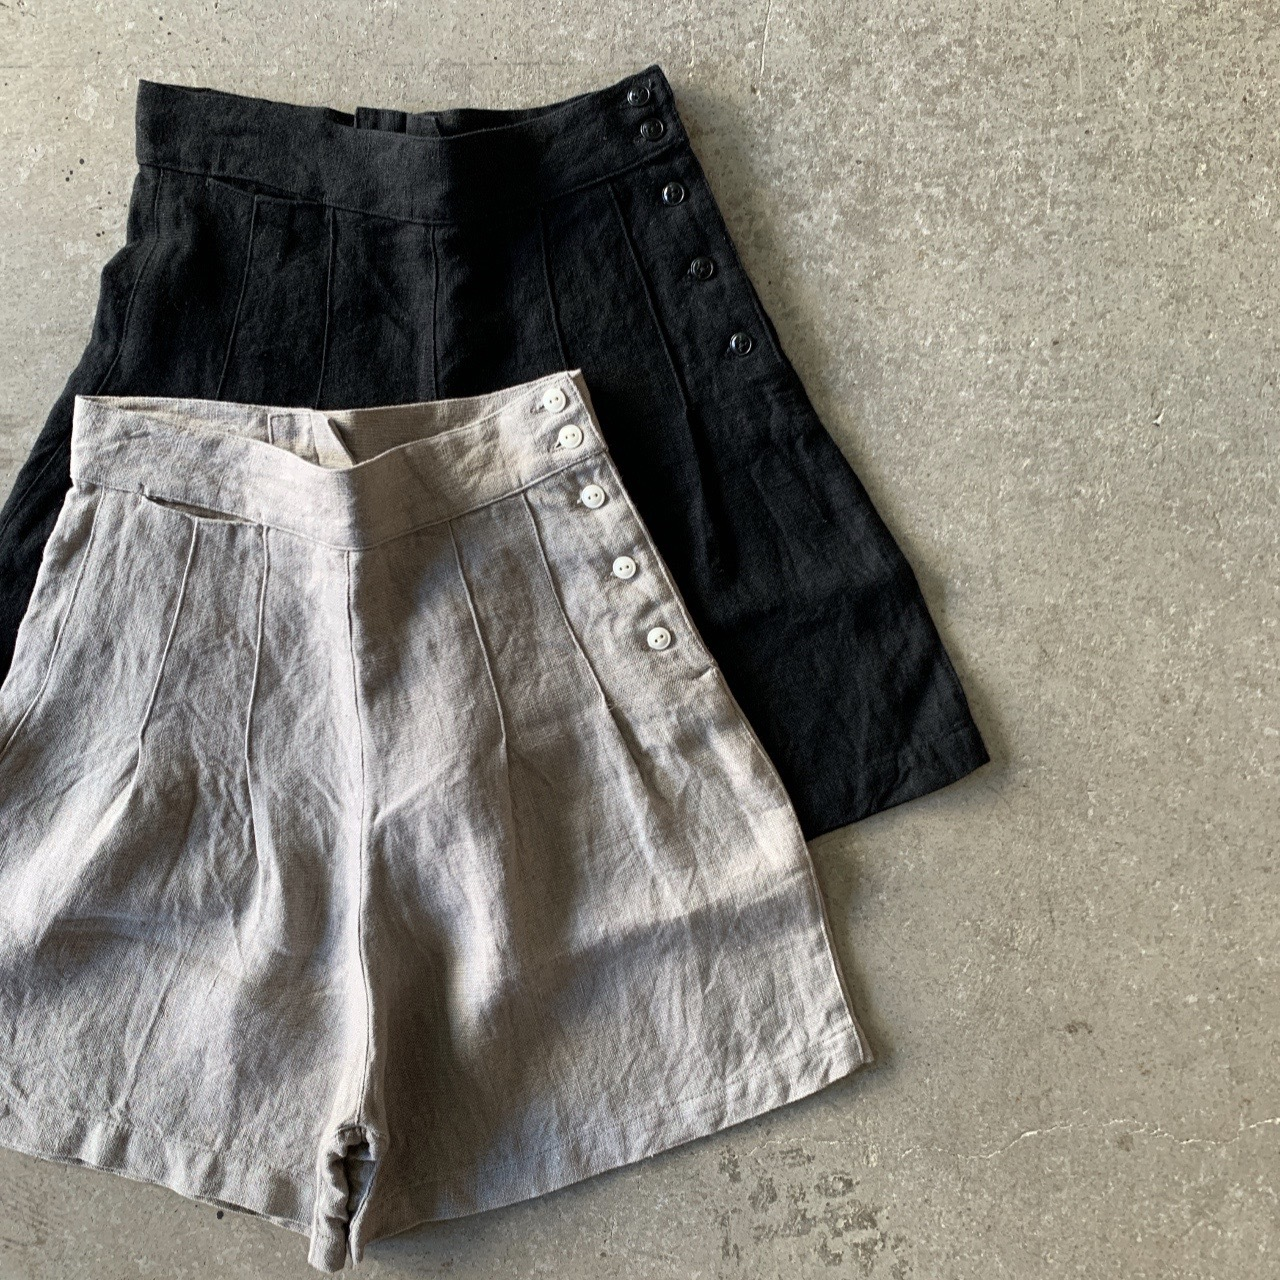 YOUNG&OLSEN - OLSEN'S EXERCISE SHORTS LN